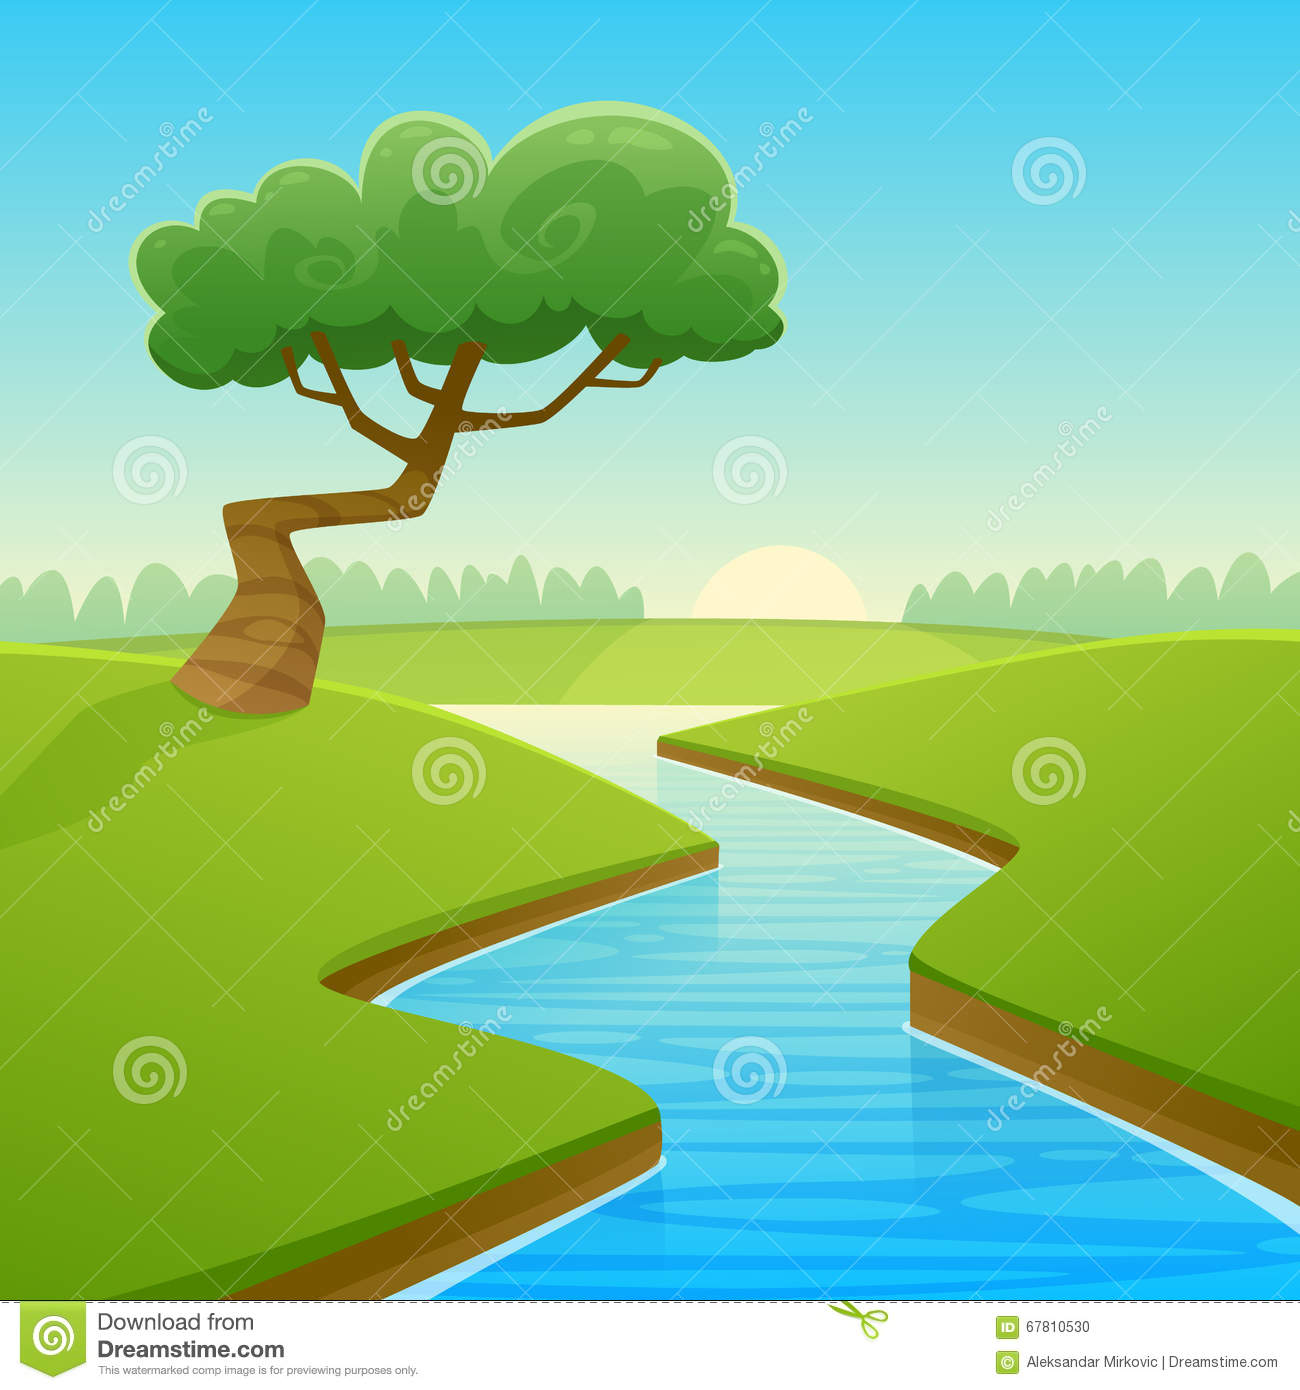 Download Landscape Summer - summer-cartoon-landscape-illustration-rural-river-over-land-tree-67810530  Pic_416452.jpg